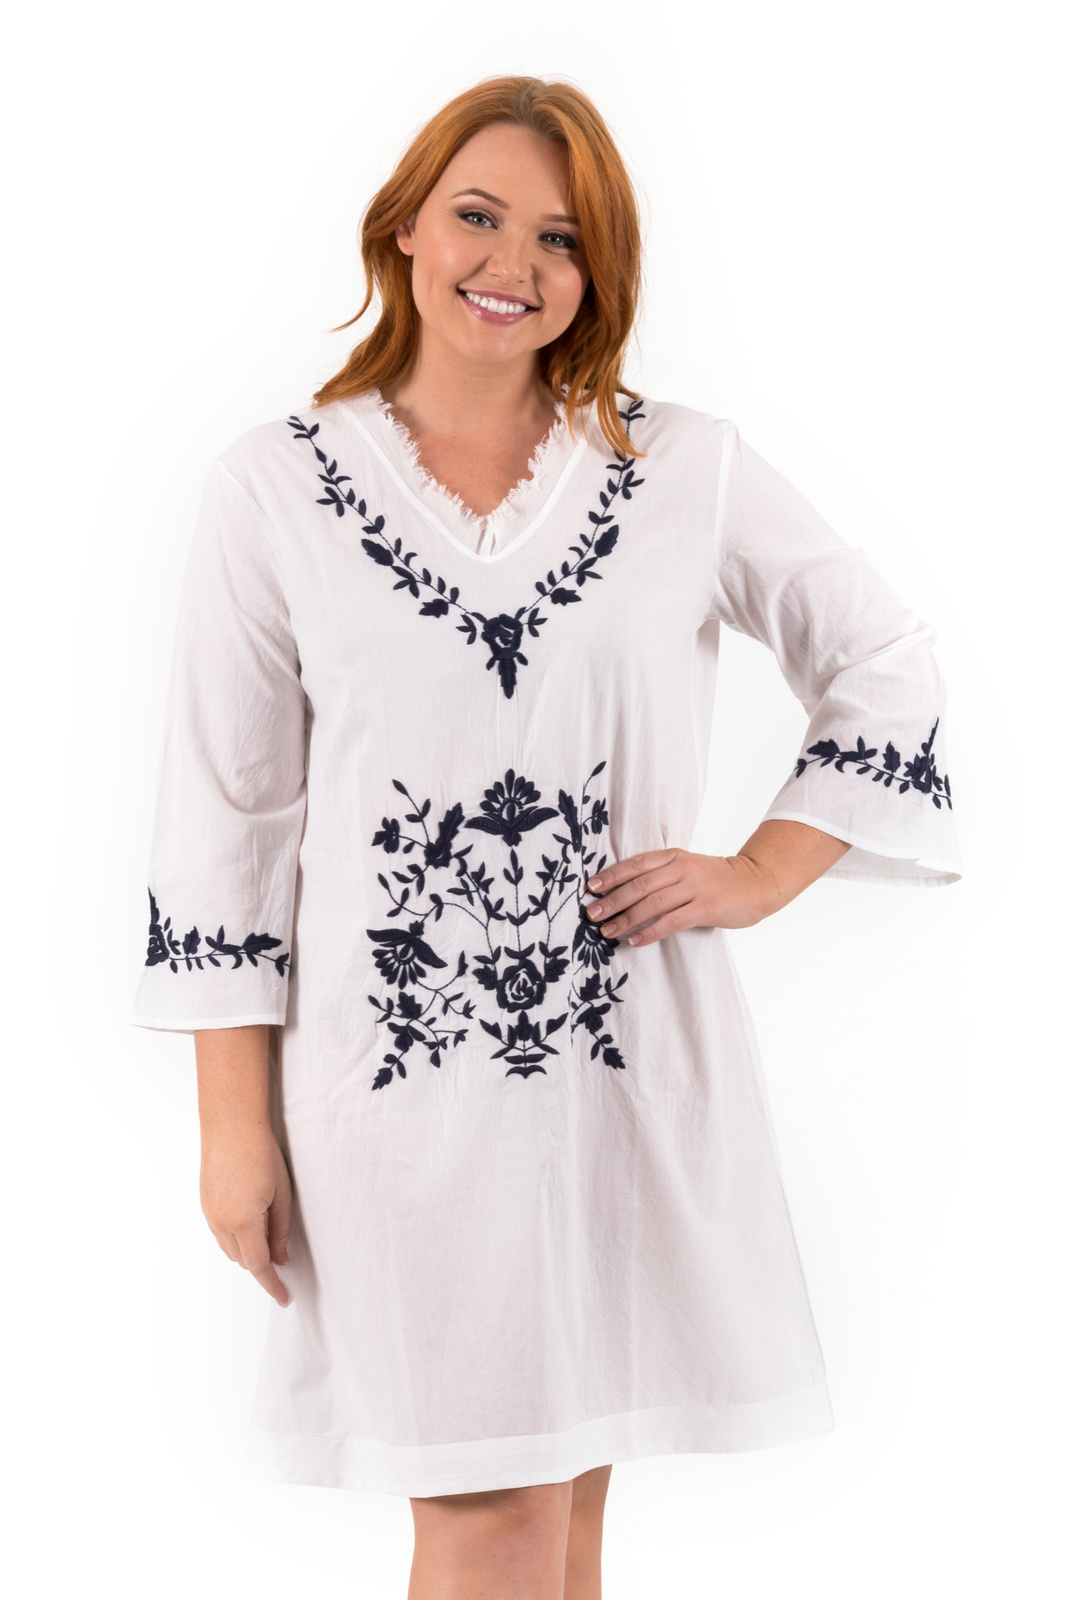 Tunic Dress | Daisy | Embroidered